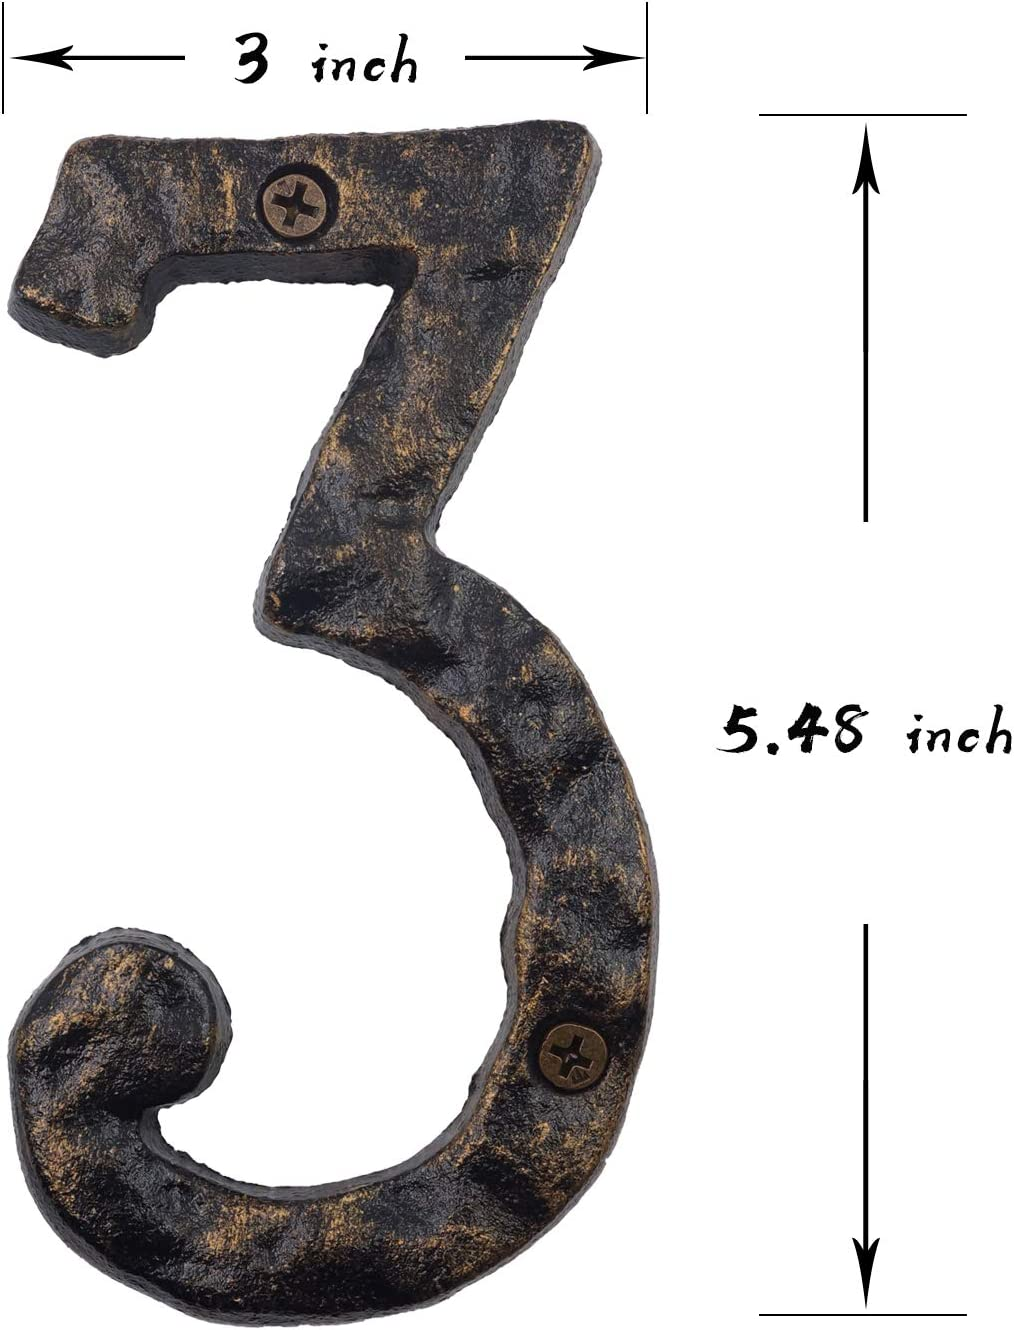 6 Inch House Numbers Number 0 Rustic Cast Iron Home Address Number Featuring Unique Hammered Appearance with Uneven Antique Brass Finished